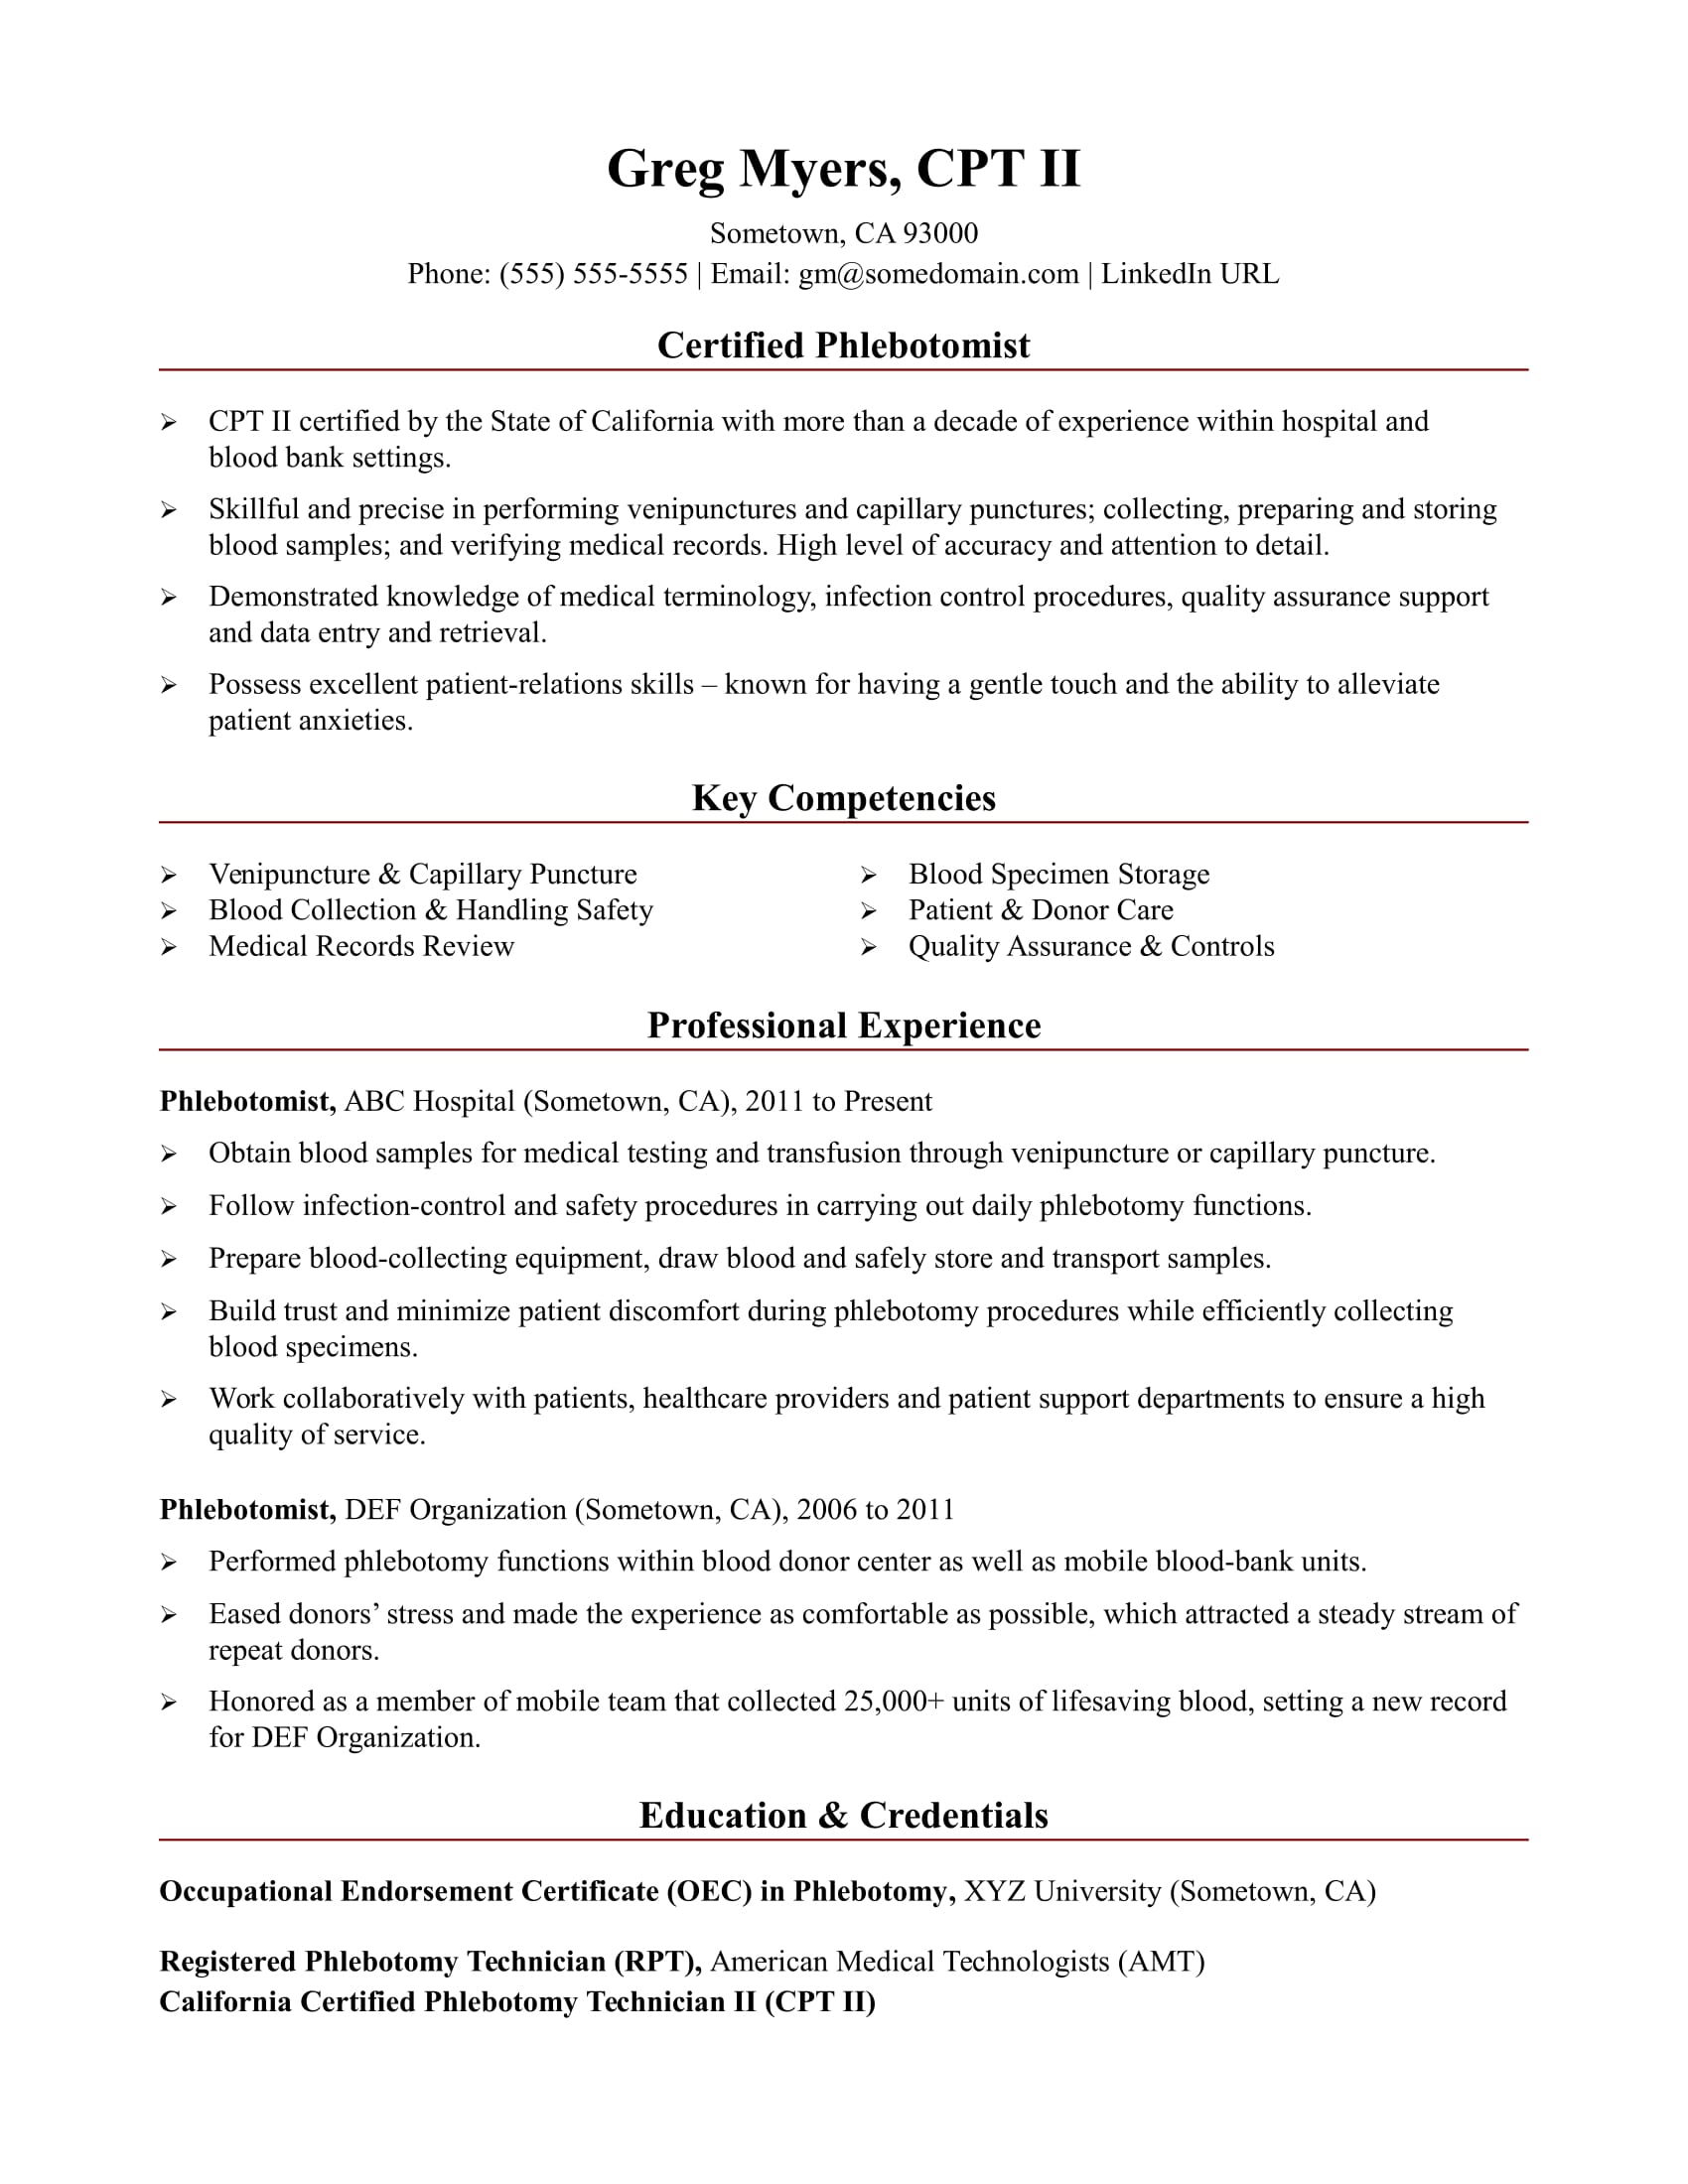 Phlebotomist resume sample monster sample resume for a phlebotomist madrichimfo Images